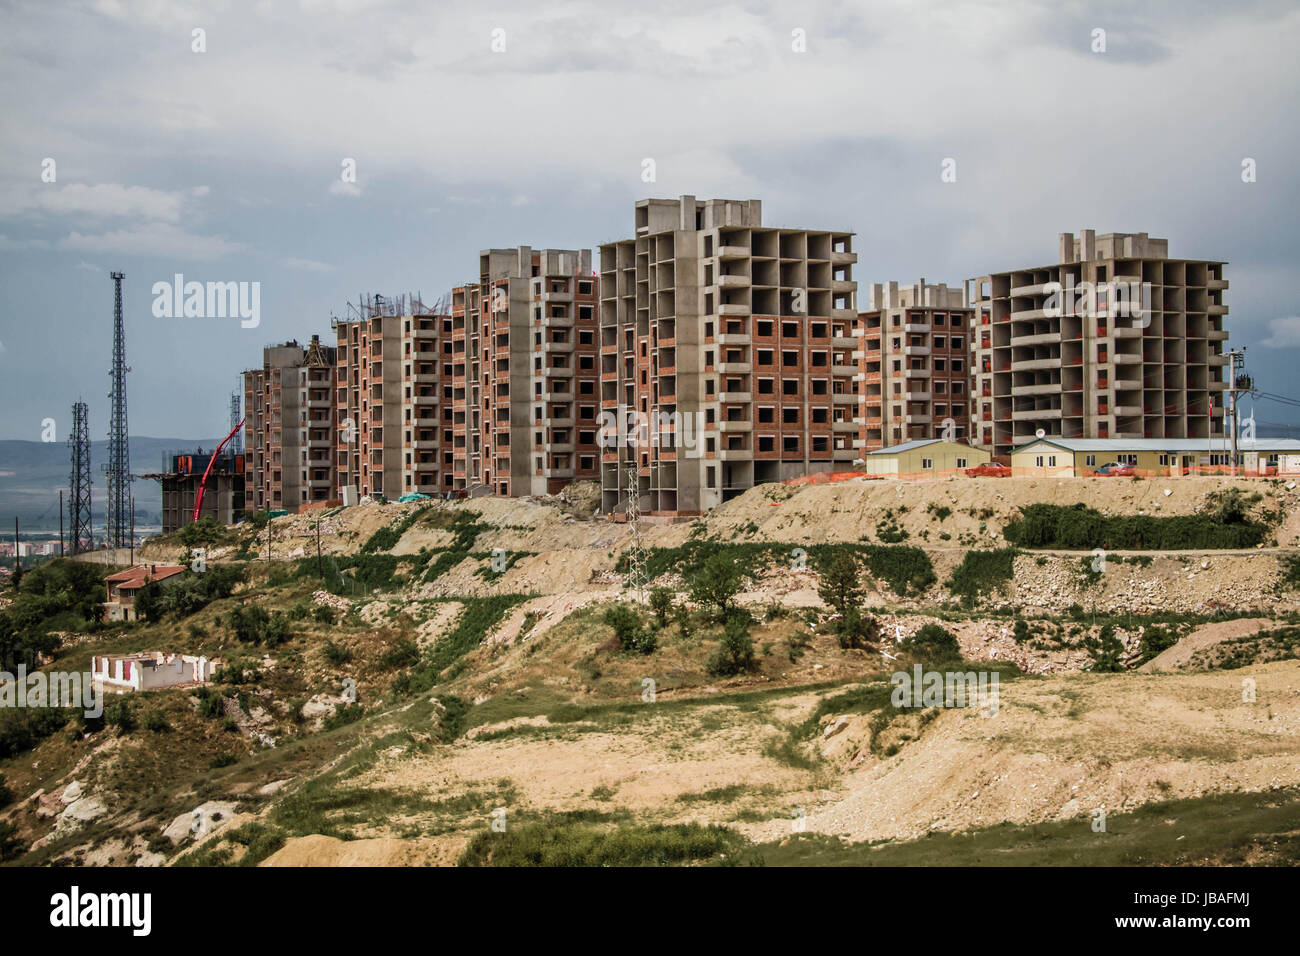 Public housing constructions made in the suburbs of a city Stock Photo